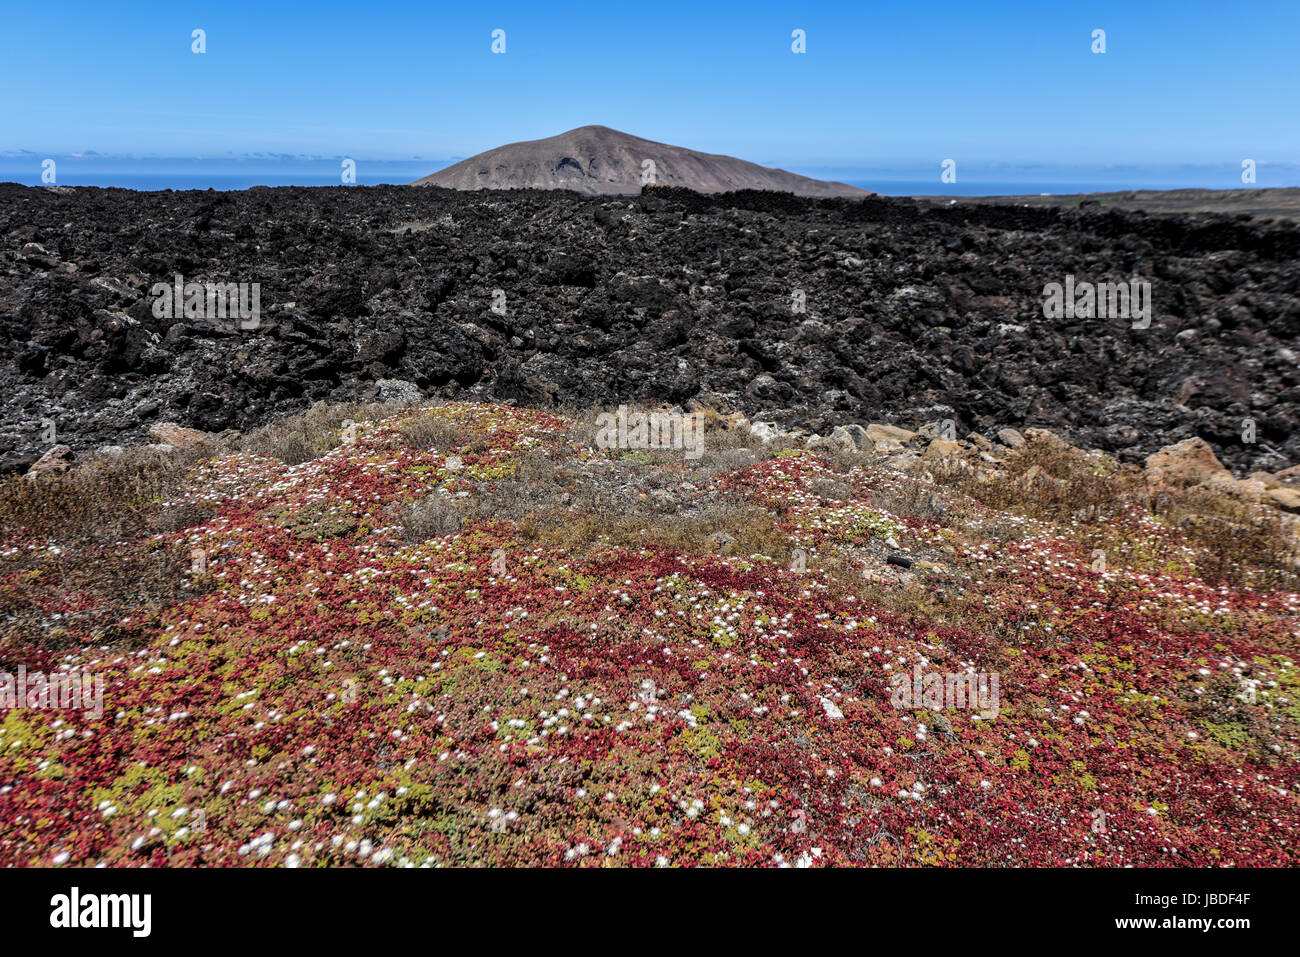 Contrast of flowers and lava in the volcanic landscape of the Timanfaya National Park.Lanzarote, Spain - Stock Image